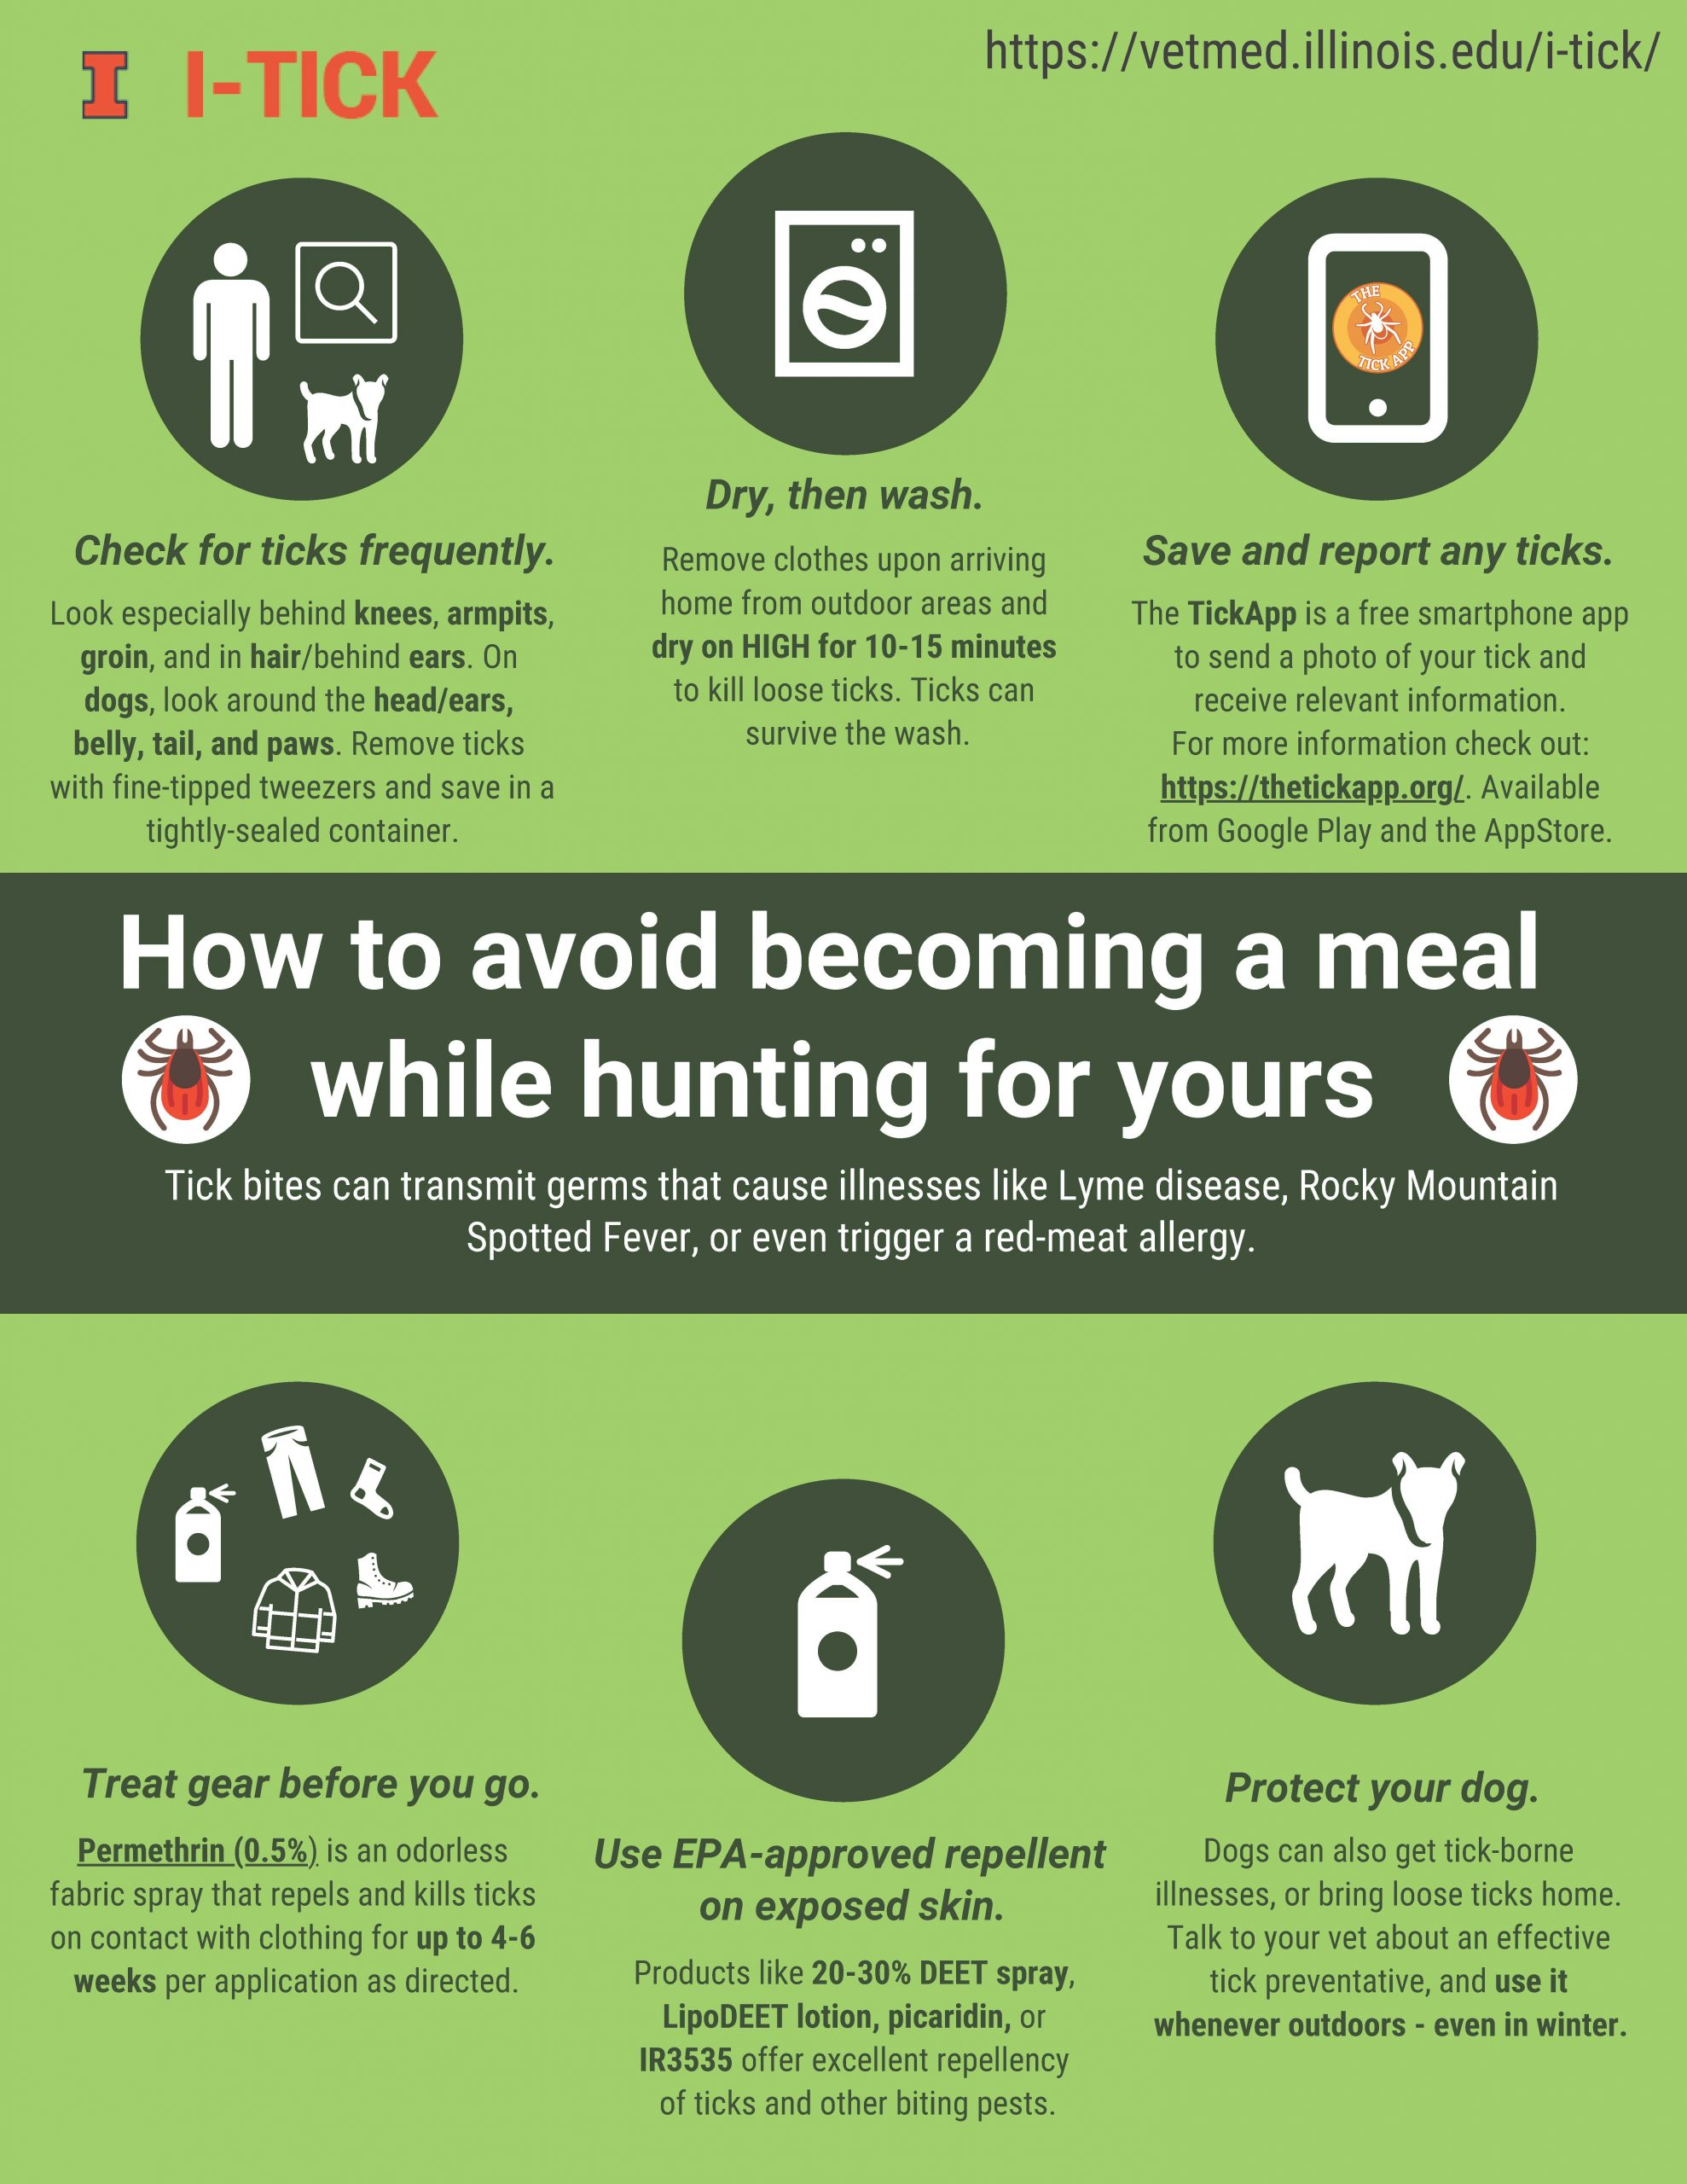 An infographic describing how to avoid ticks while being outdoors. Tips included in the graphic are check for ticks frequently, dry clothes, then wash clothes, save and report any ticks, treat gear with permethrin (0.5%) before going out, use EPA-approved repellent on exposed skin, and protect your dog.